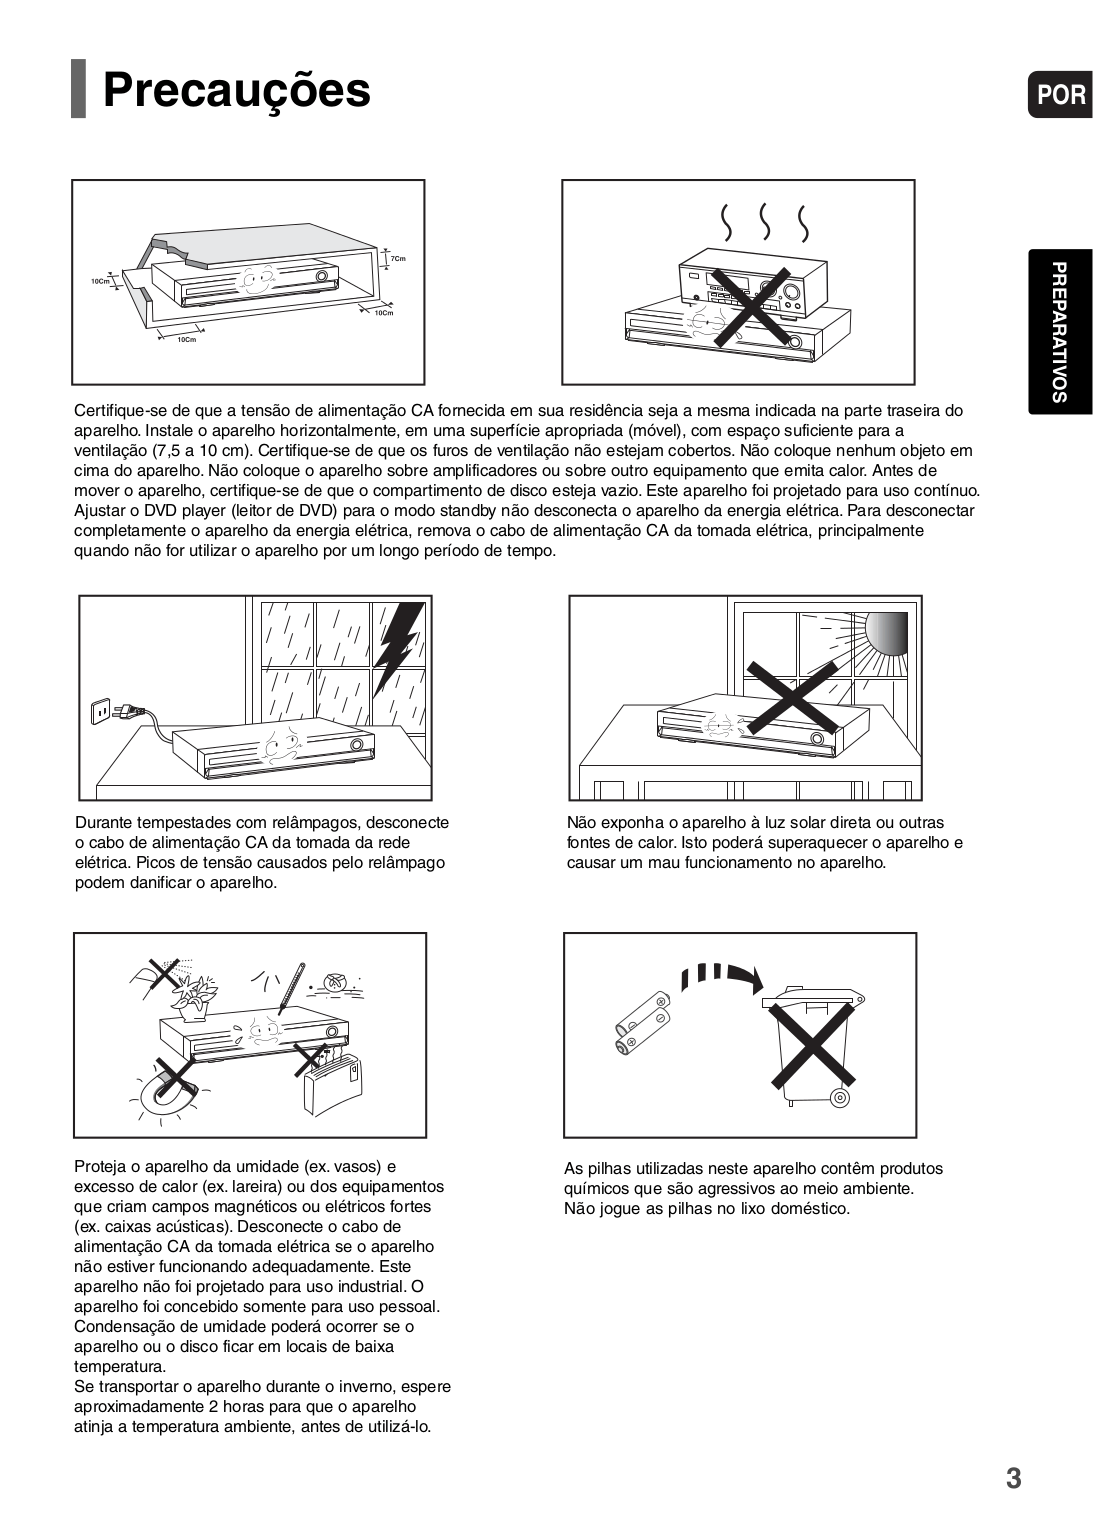 PDF manual for Samsung Home Theater HT-X20